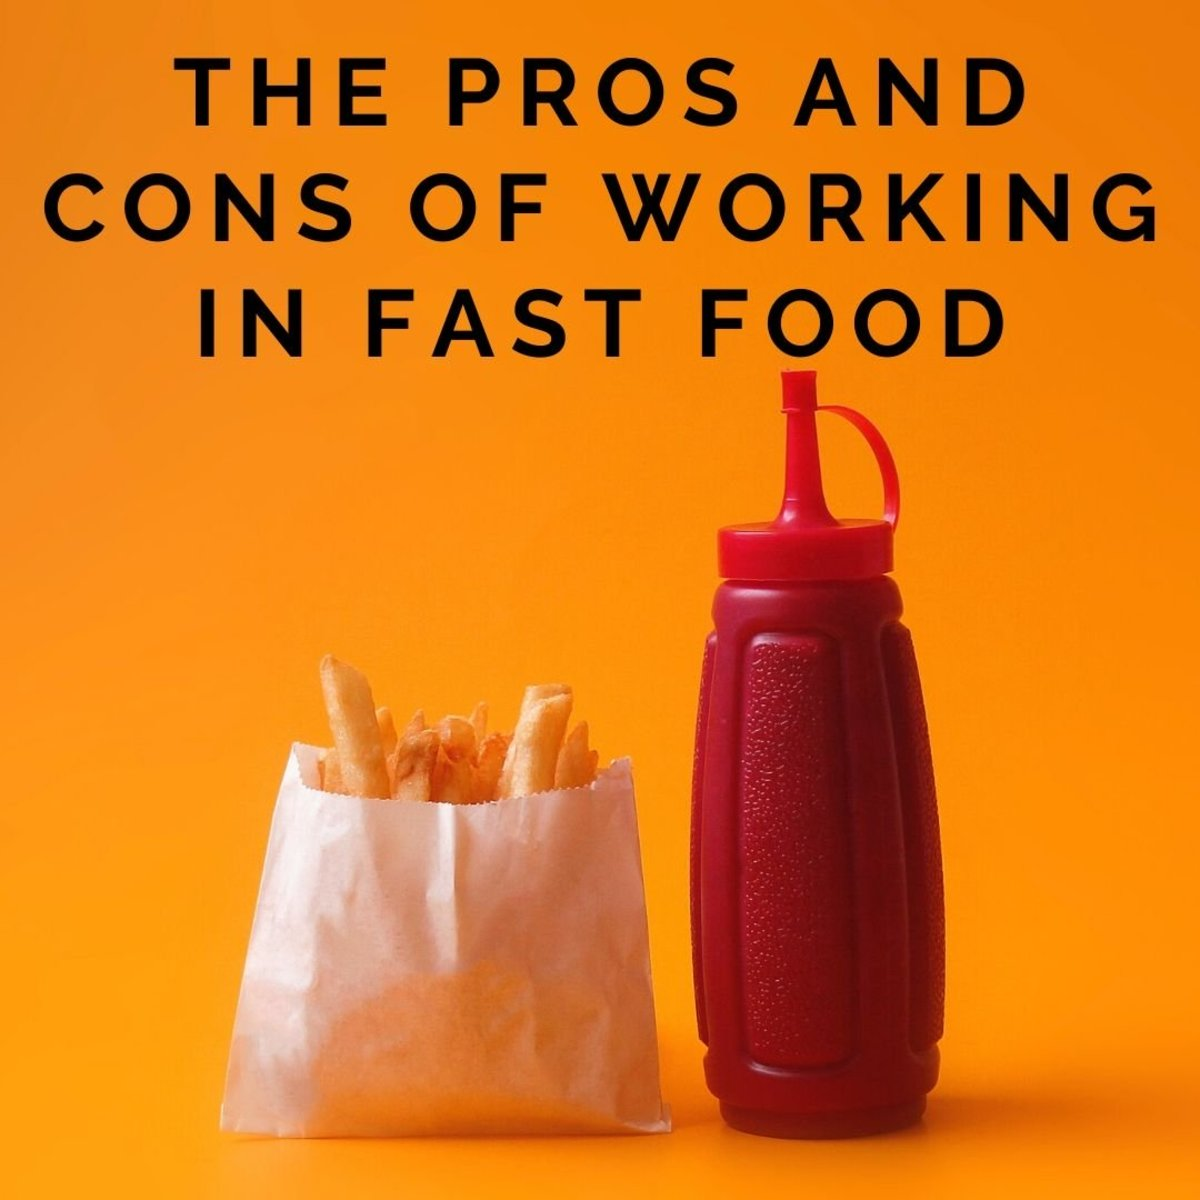 Learn all about the benefits and downsides of working in the fast-food industry.